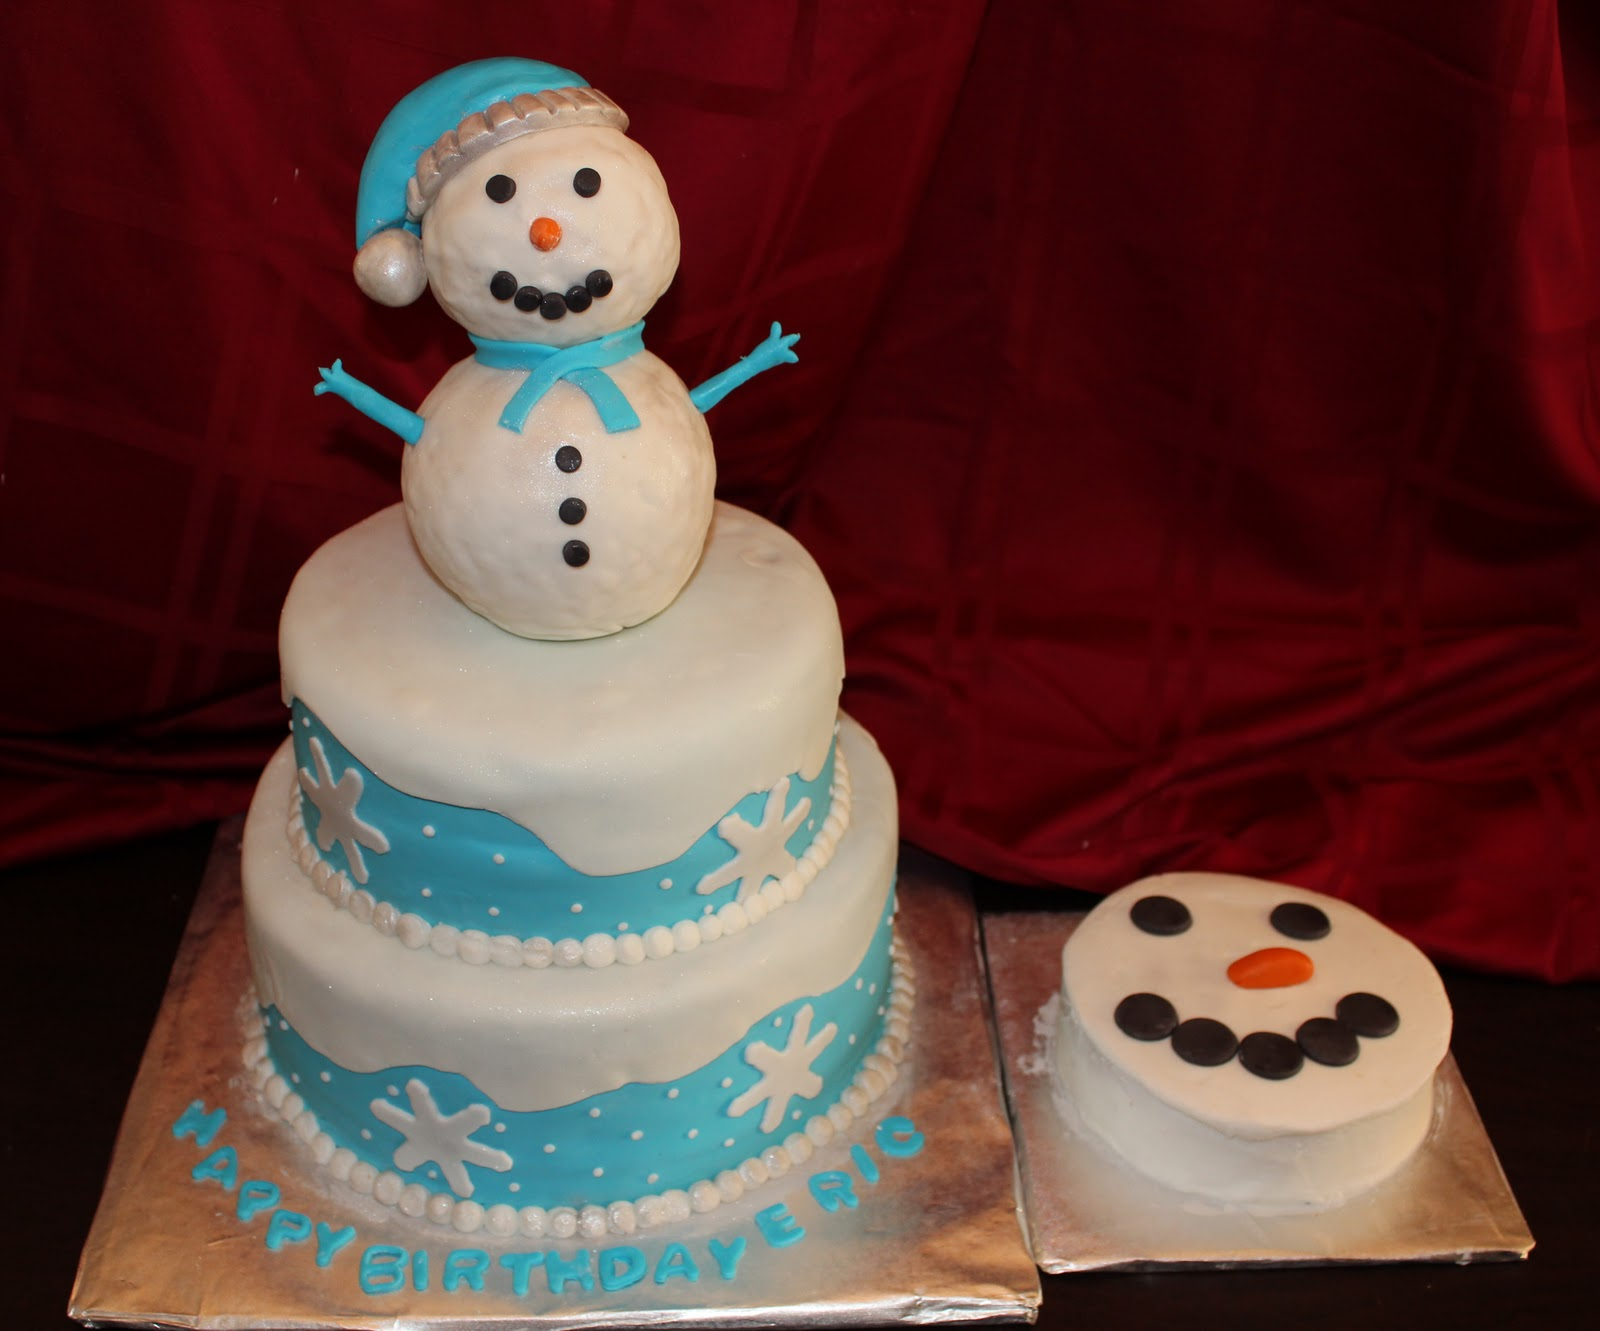 Admirable Snowman Cakes Decoration Ideas Little Birthday Cakes Personalised Birthday Cards Petedlily Jamesorg